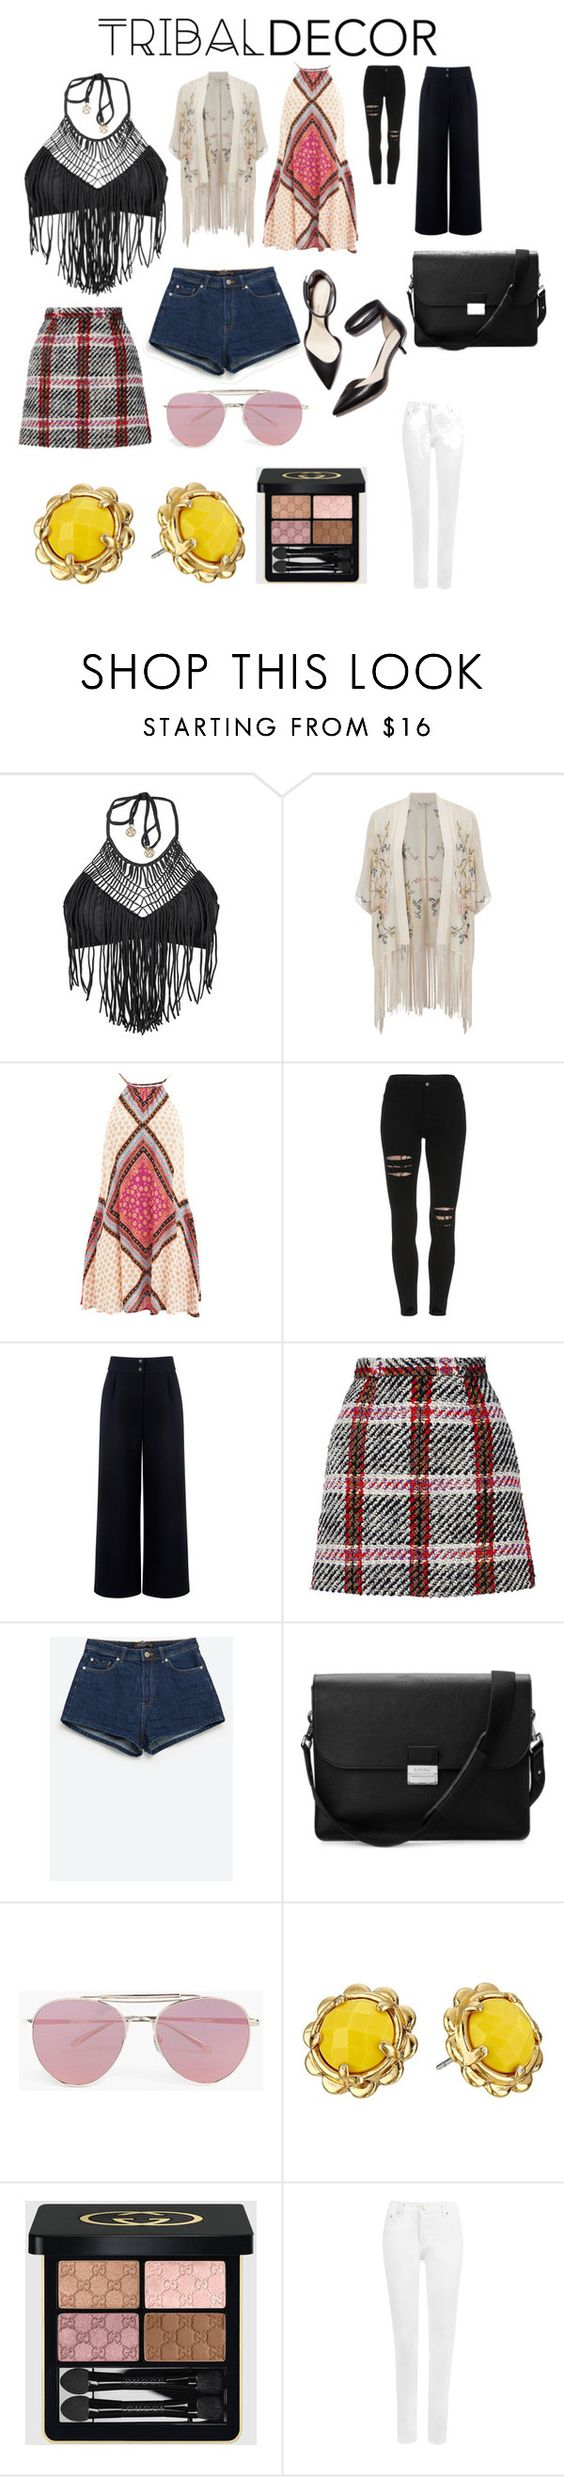 """tribal"" by emilysh02 ❤ liked on Polyvore featuring Luli Fama, Miss Selfridge, MINKPINK, Être Cécile, Carven, Zara, 3.1 Phillip Lim, Aspinal of London, Boohoo and Kate Spade"